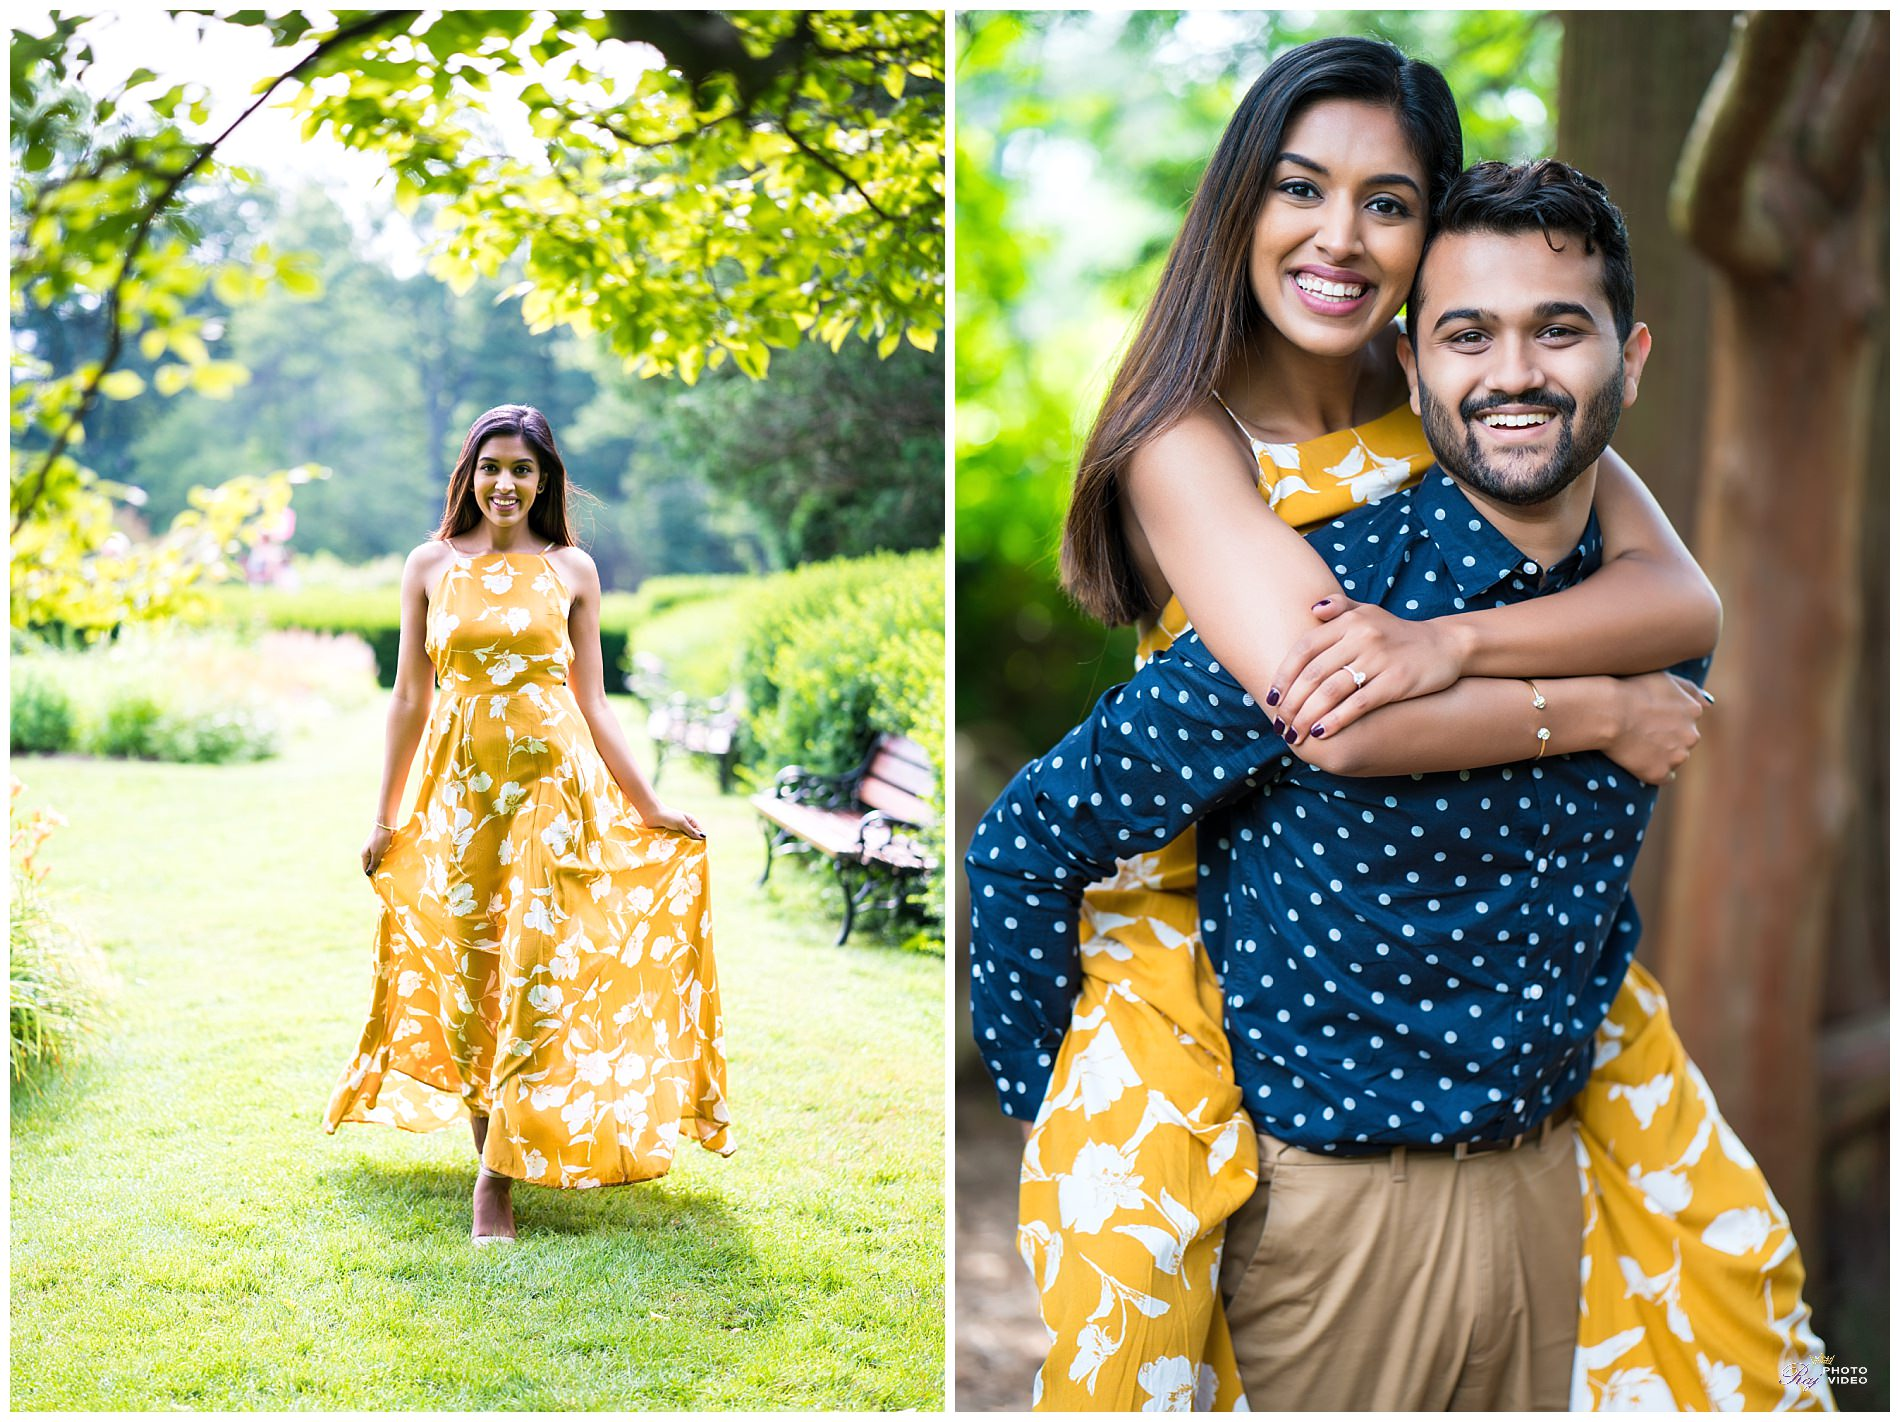 Elizabeth-Park-Rose-Garden-Hartford-CT-Engagement-Shoot-Pratiti-Suraj-19.jpg